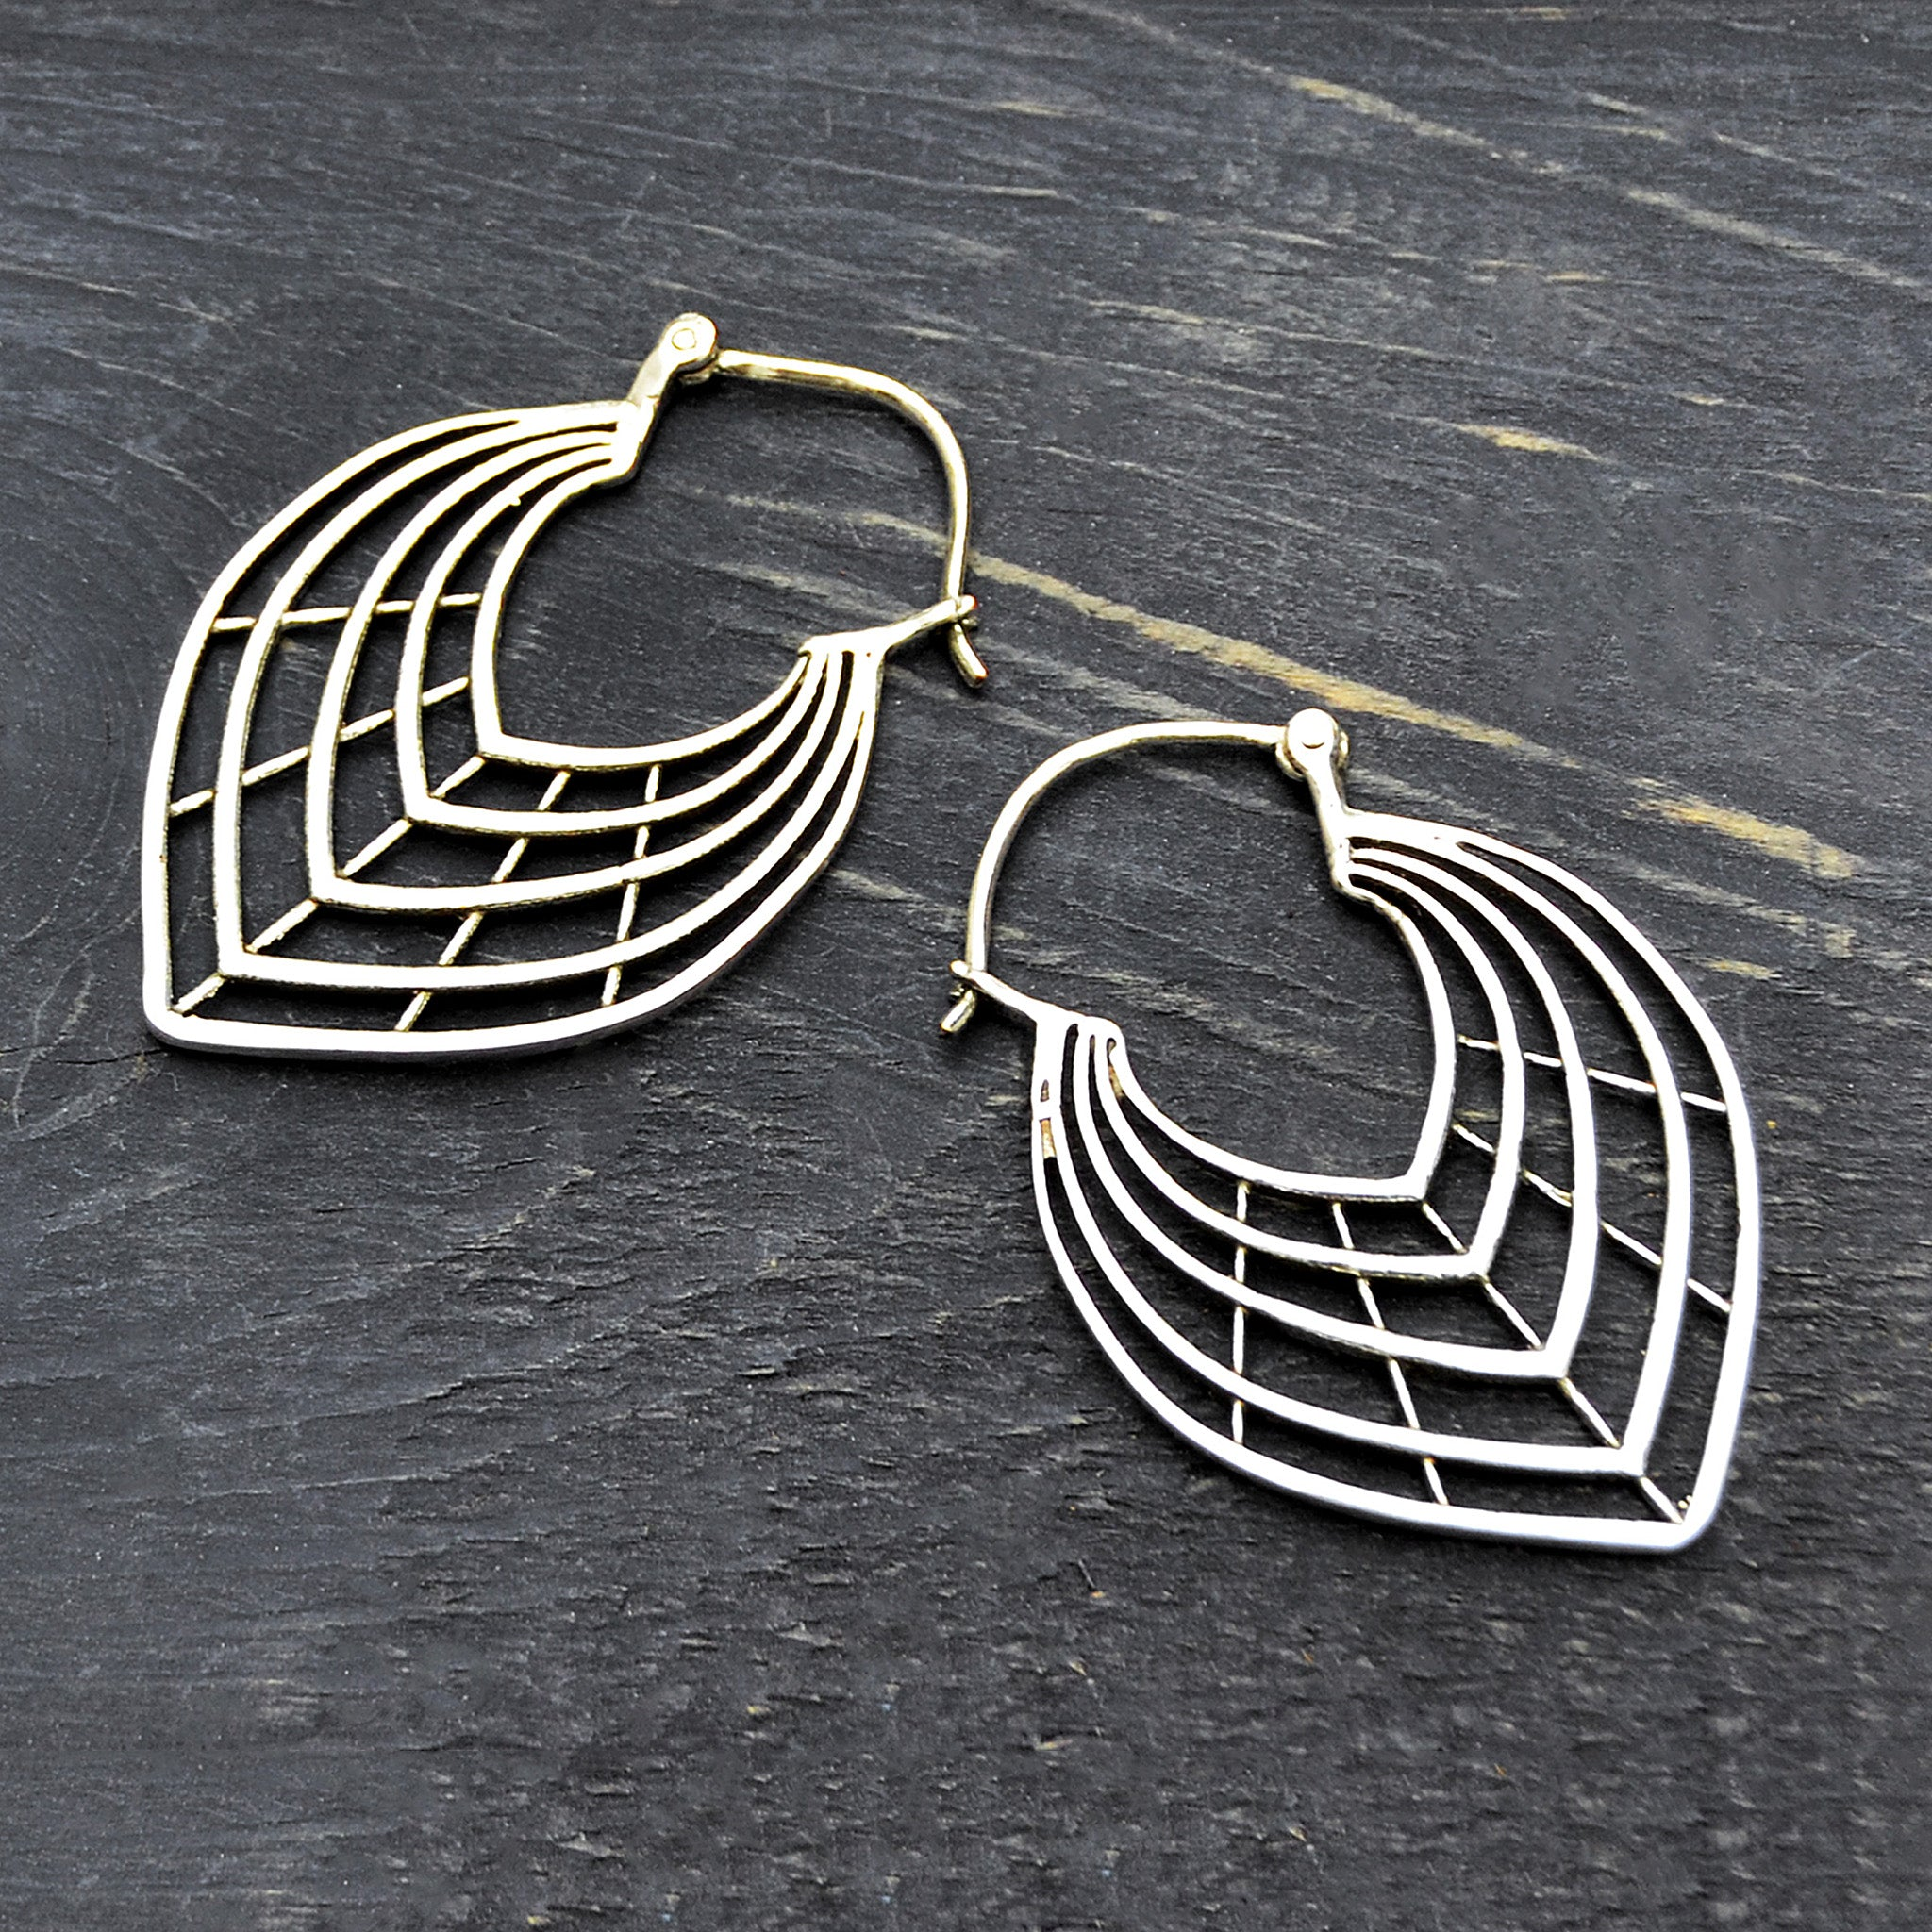 Ethnic leaf earrings